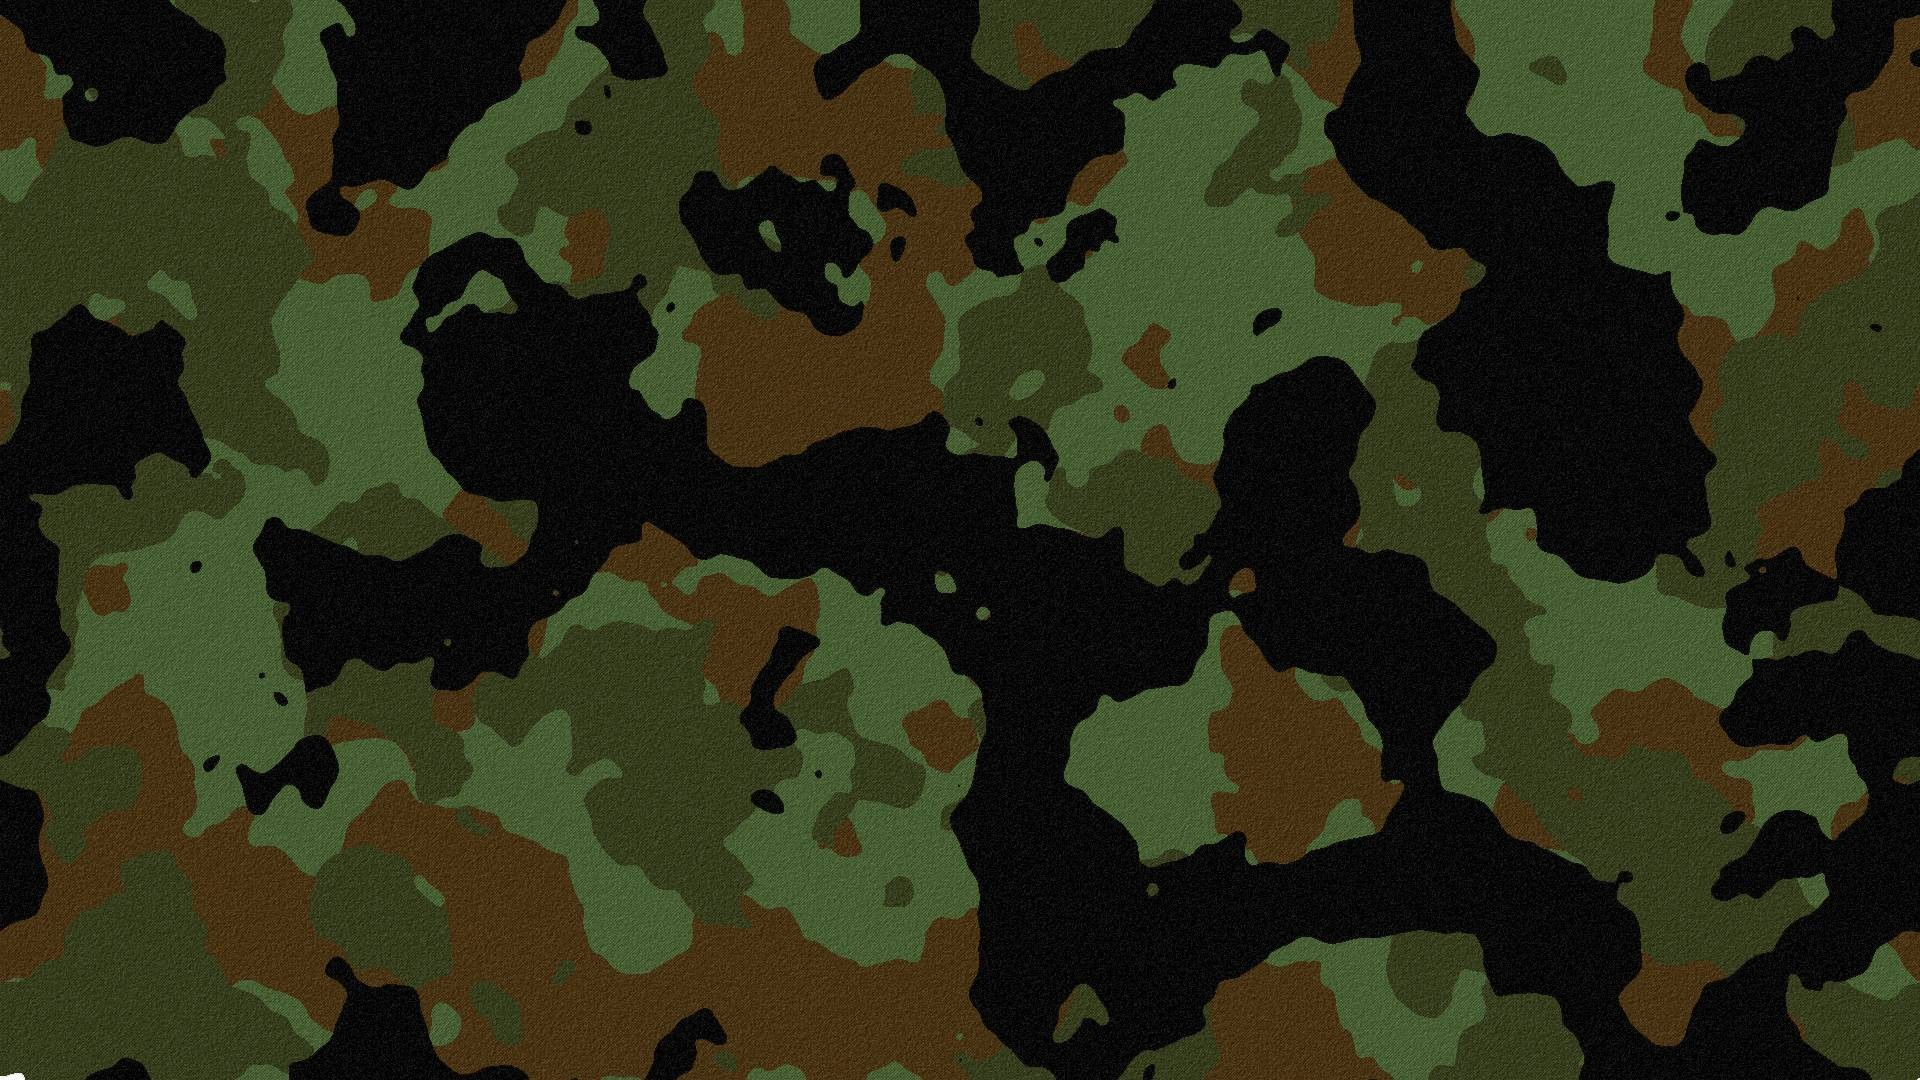 Green Wallpaper Iphone X Army Background 183 ① Download Free Beautiful High Resolution